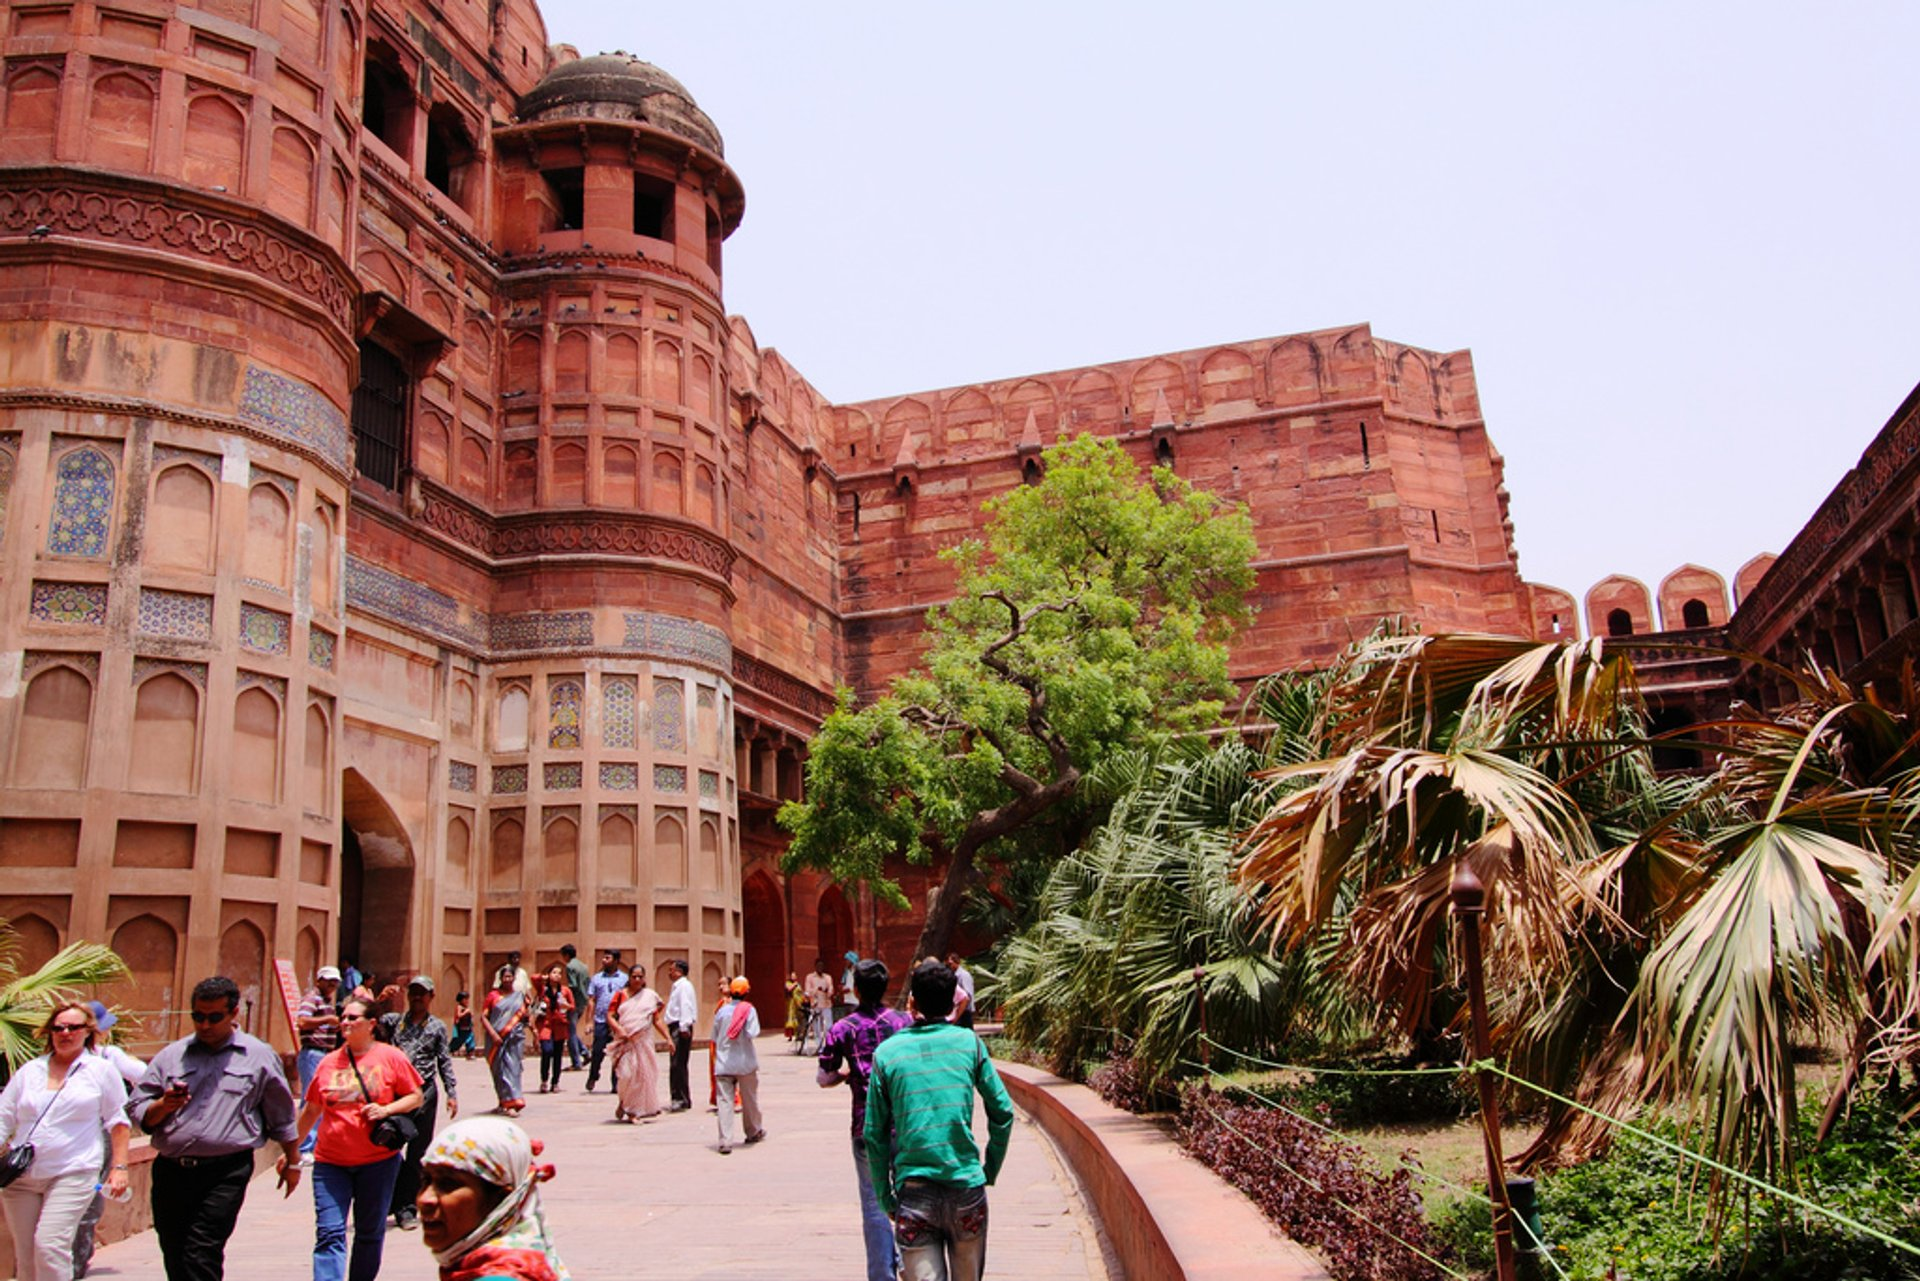 Agra Fort in Taj Mahal and Agra  - Best Season 2020